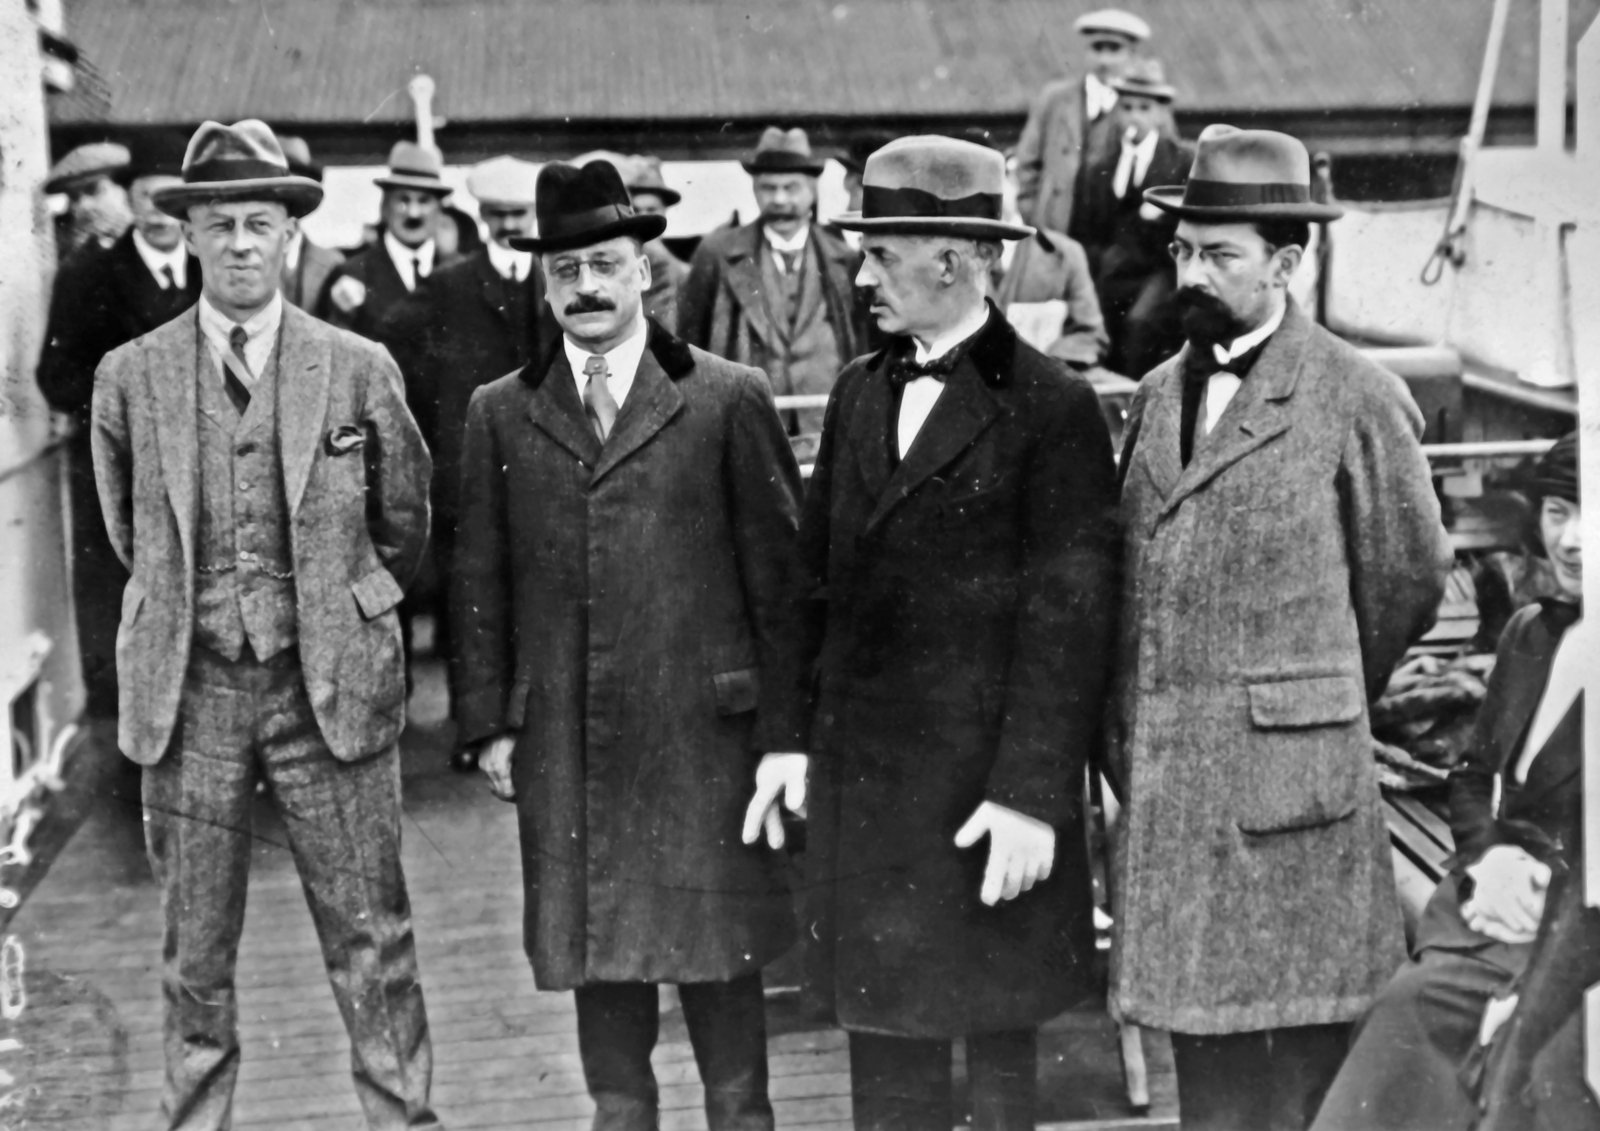 Image - Four of the delegates before setting off from Kingstown/Dún Laoghaire: Bardon, Griffith, Duggan and Duffy. Collins took great care NOT to be included in these group photographs, to the puzzlement of the Press. (Credit: Getty Images)